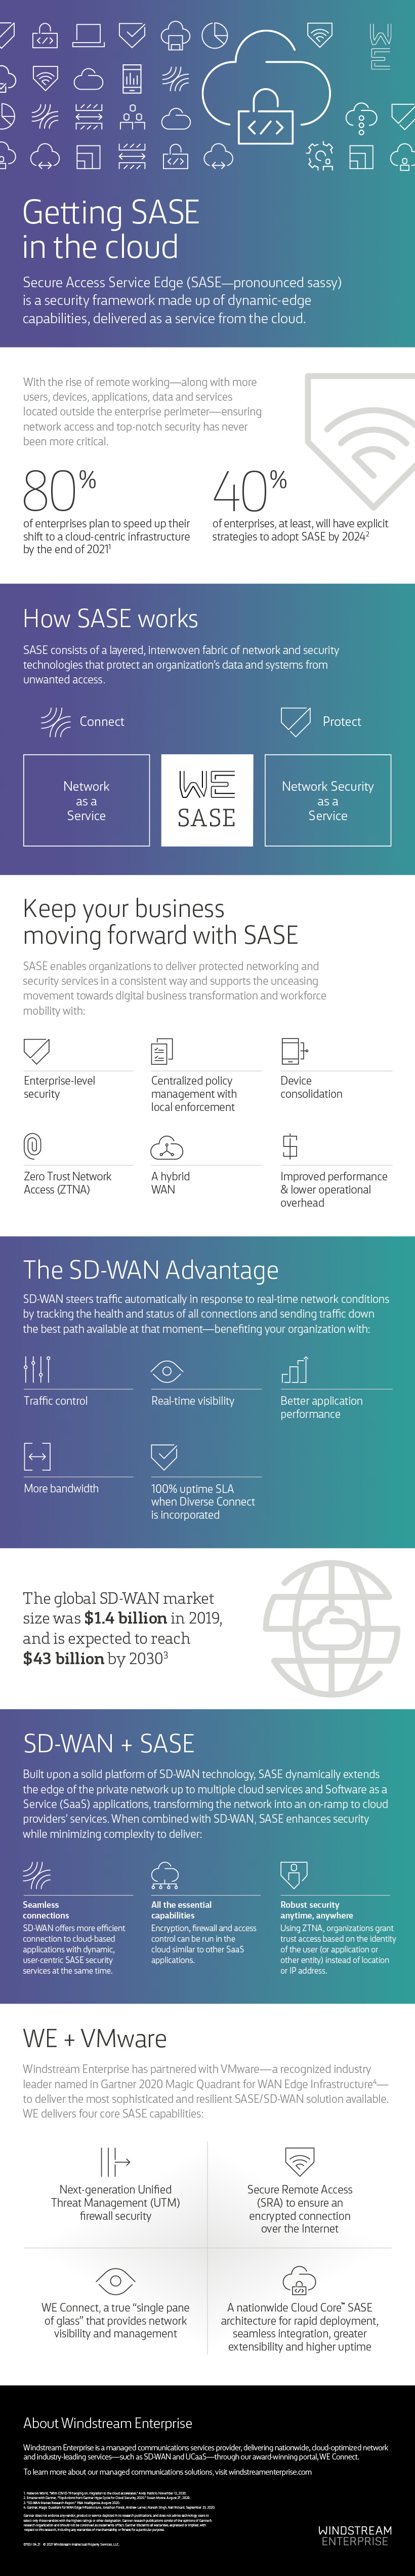 Get SASE in the Cloud Infographic